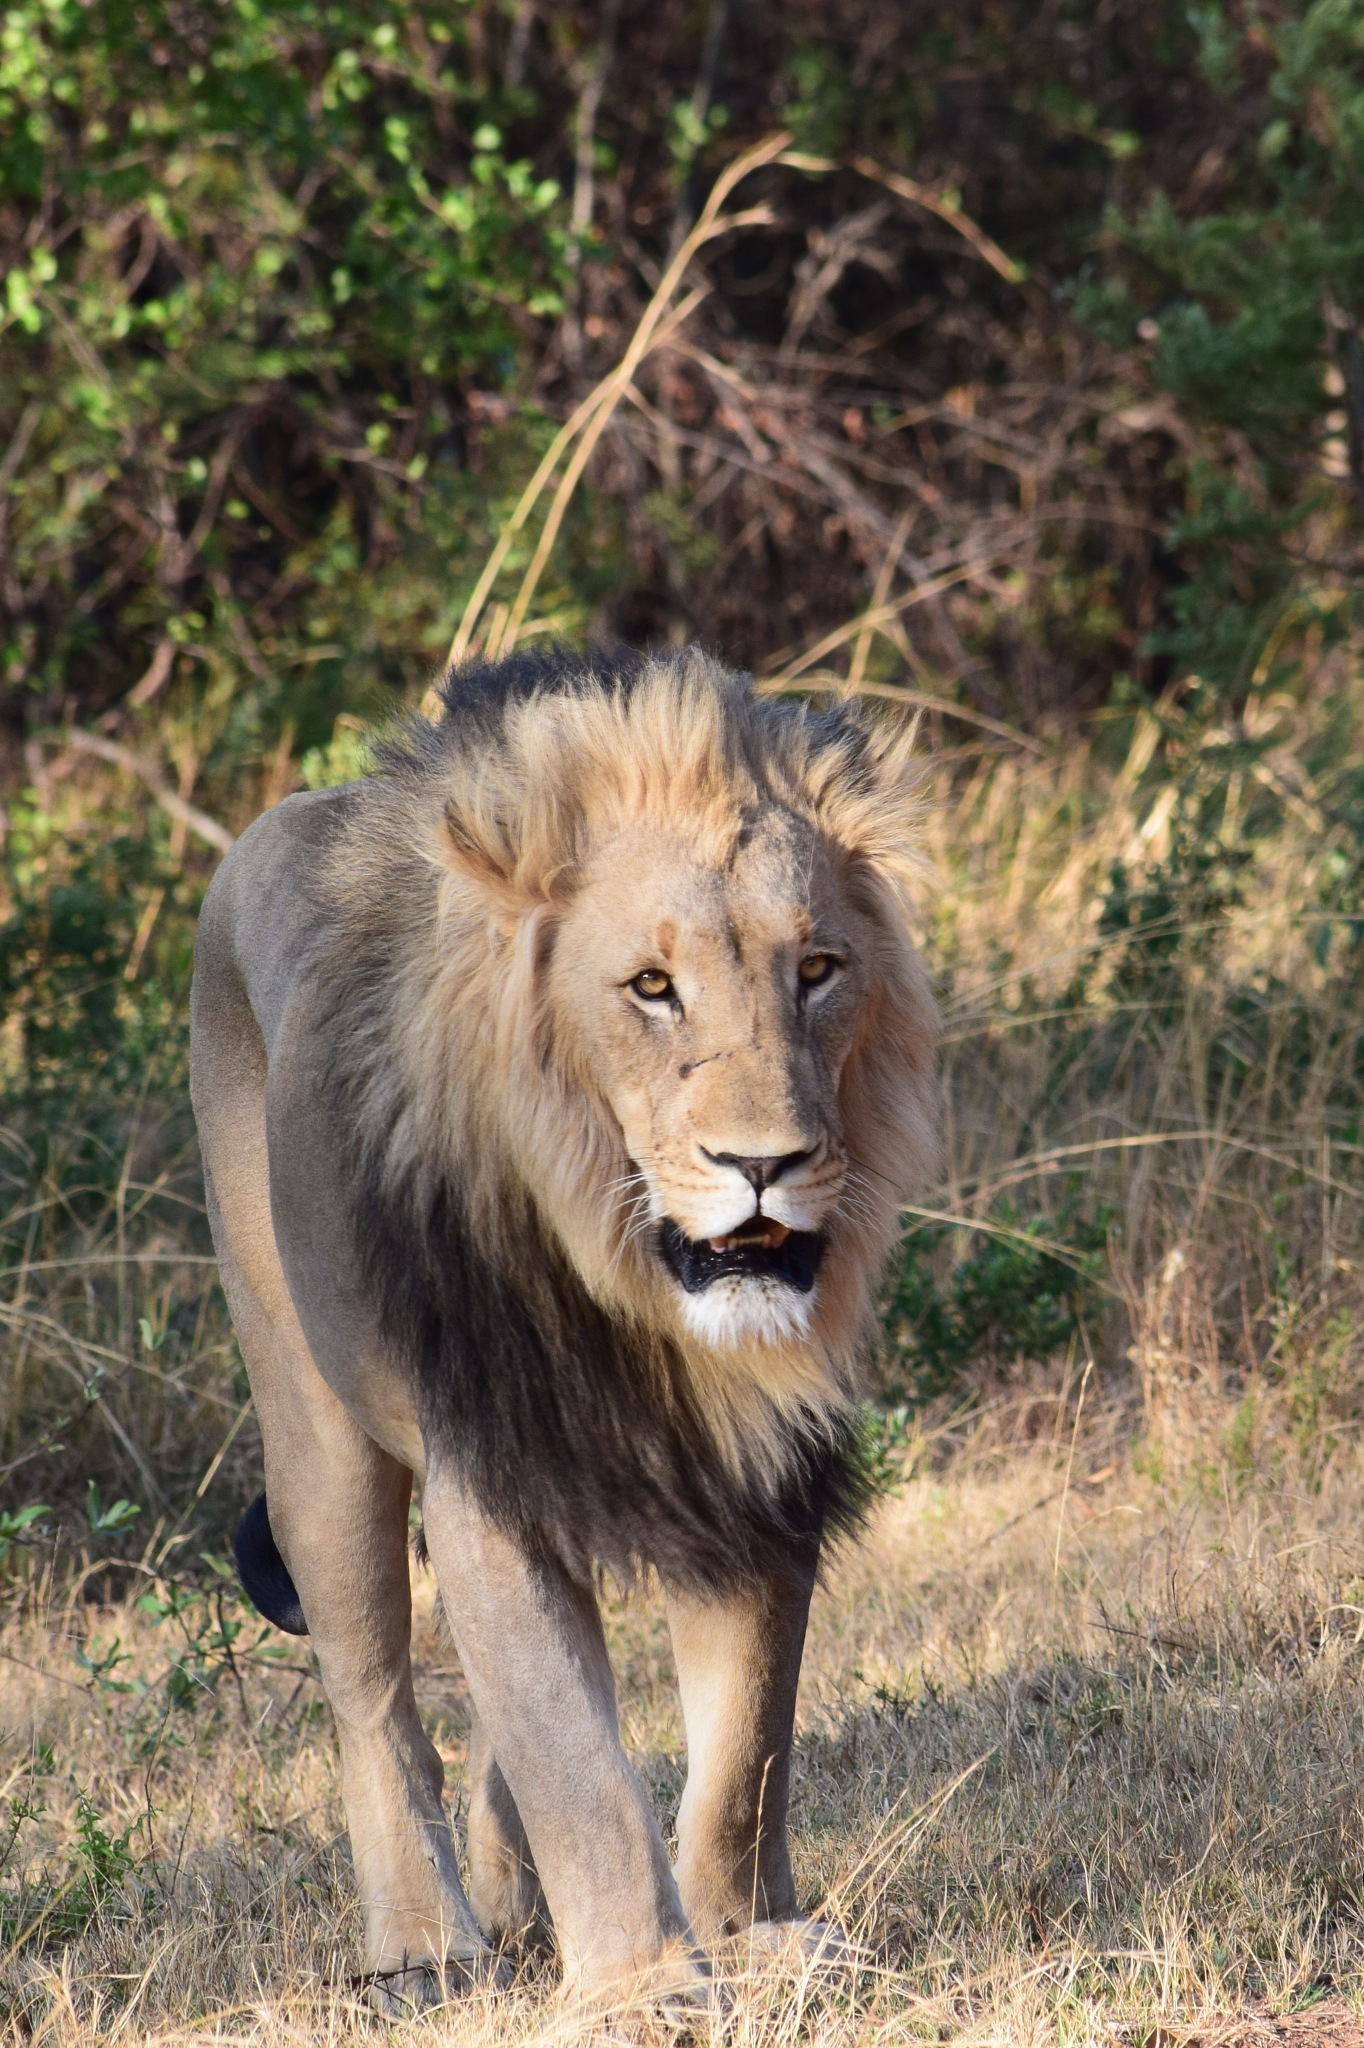 Lion approaching by Lars M.